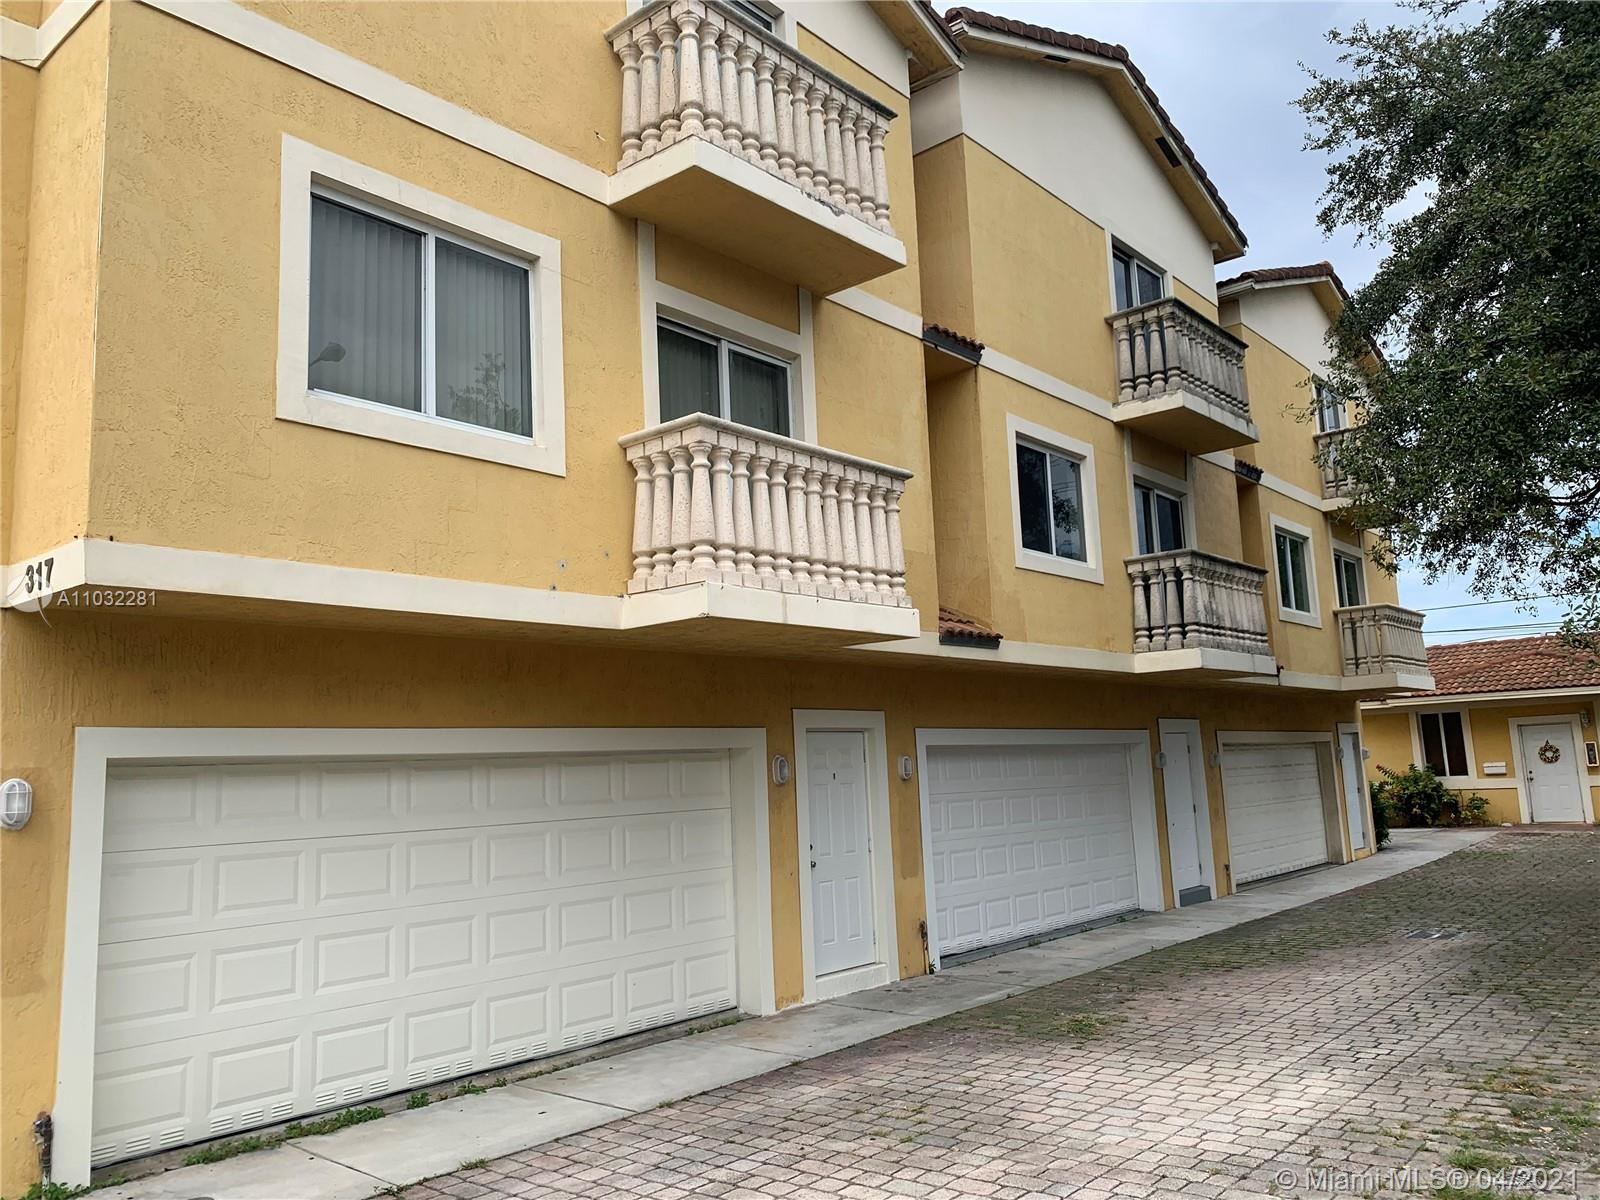 317 East 4th Street #1,2,3,4, Hialeah, FL 33010 - #: A11032281